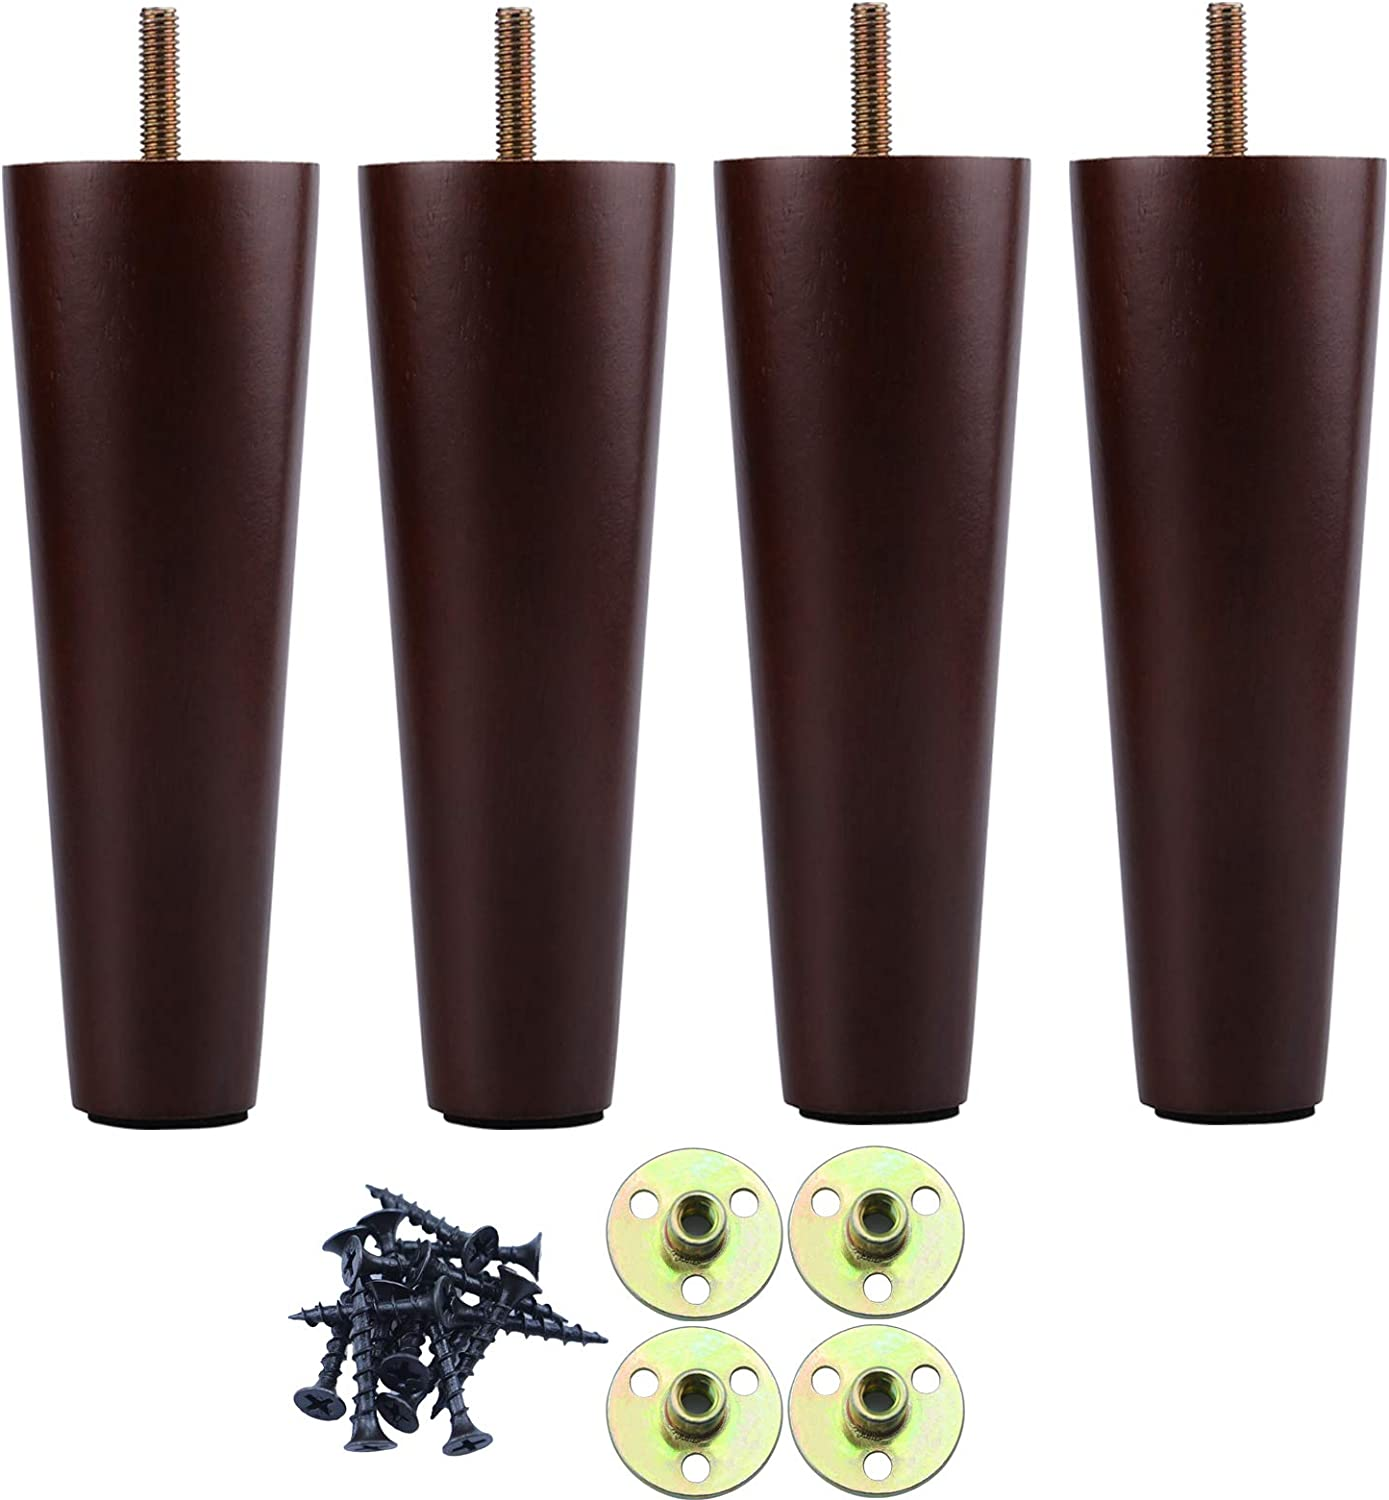 8 Inch Wood Furniture outlet Legs Sofa 4 Brown Selling and selling Set of Furn Wooden